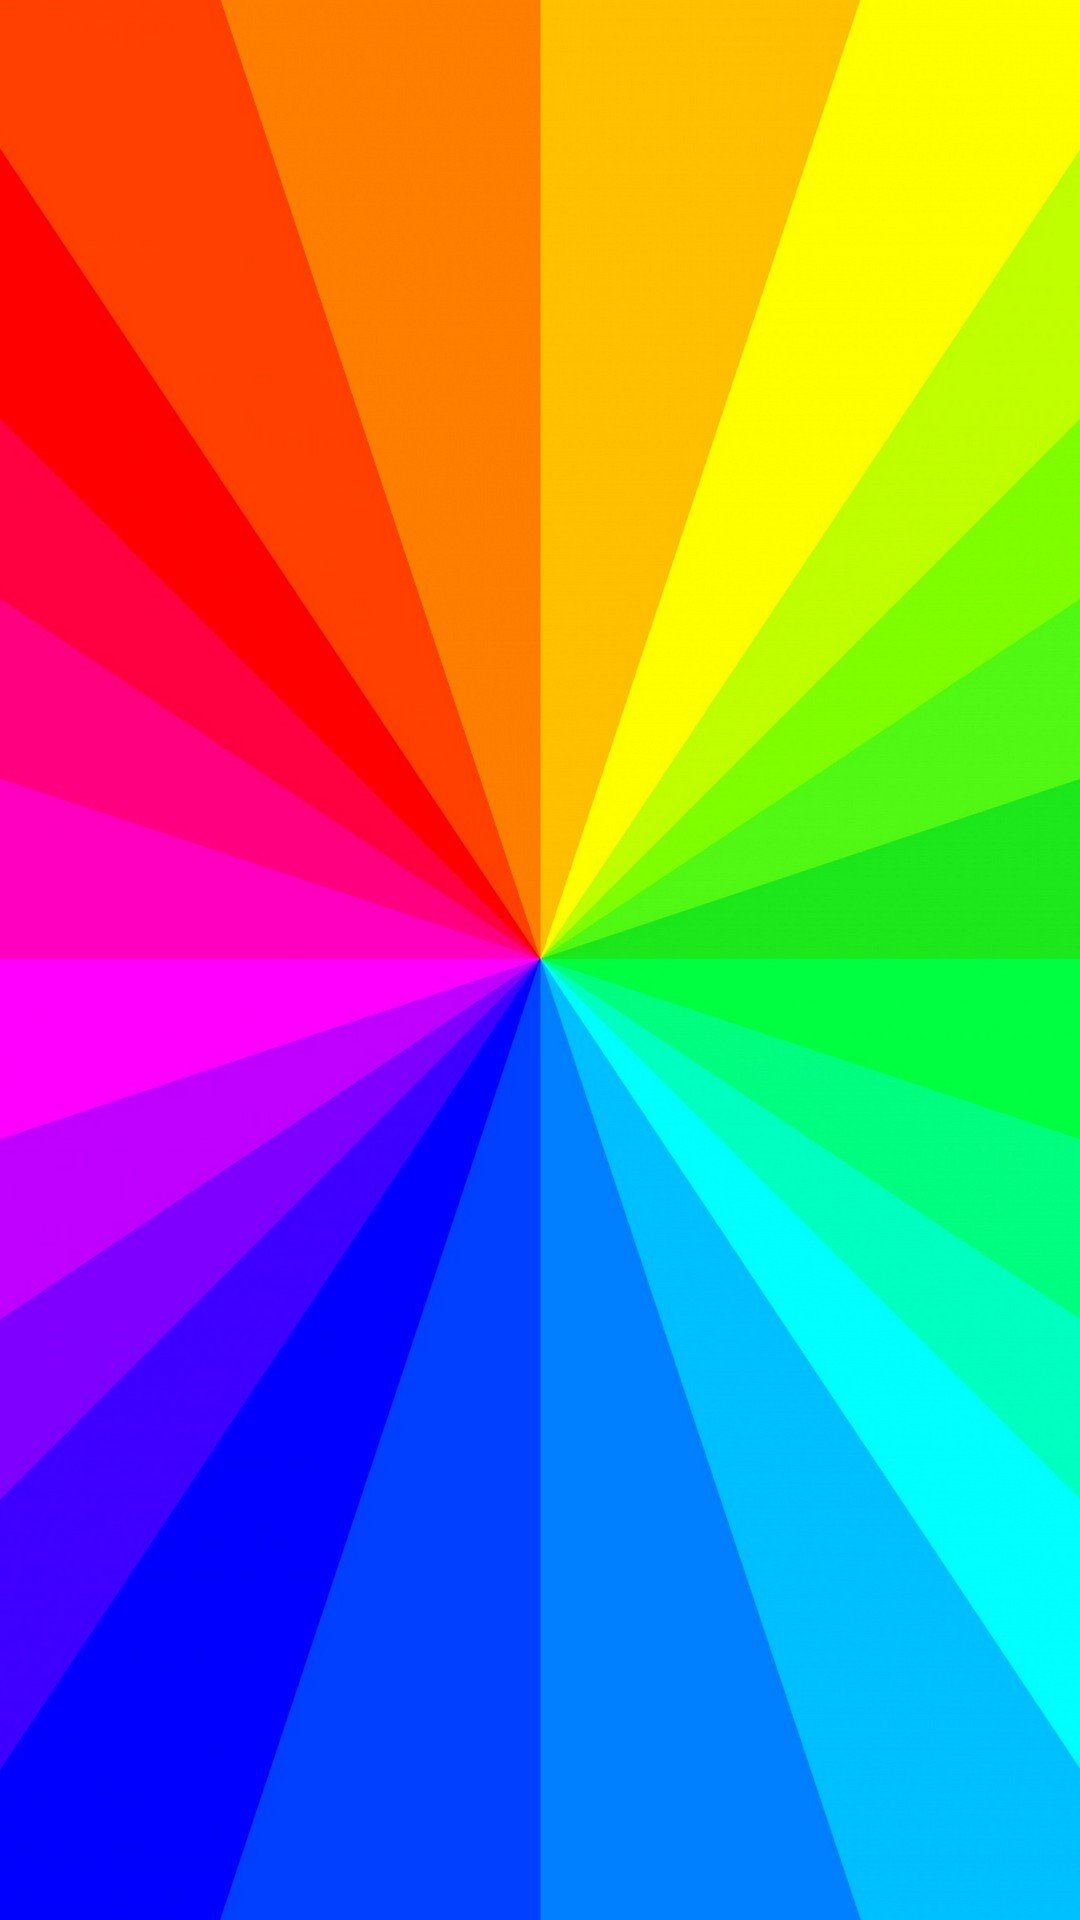 1080x1920 Wallpaper iPhone Rainbow Colors with image resolution  pixel. You  can make this wallpaper for